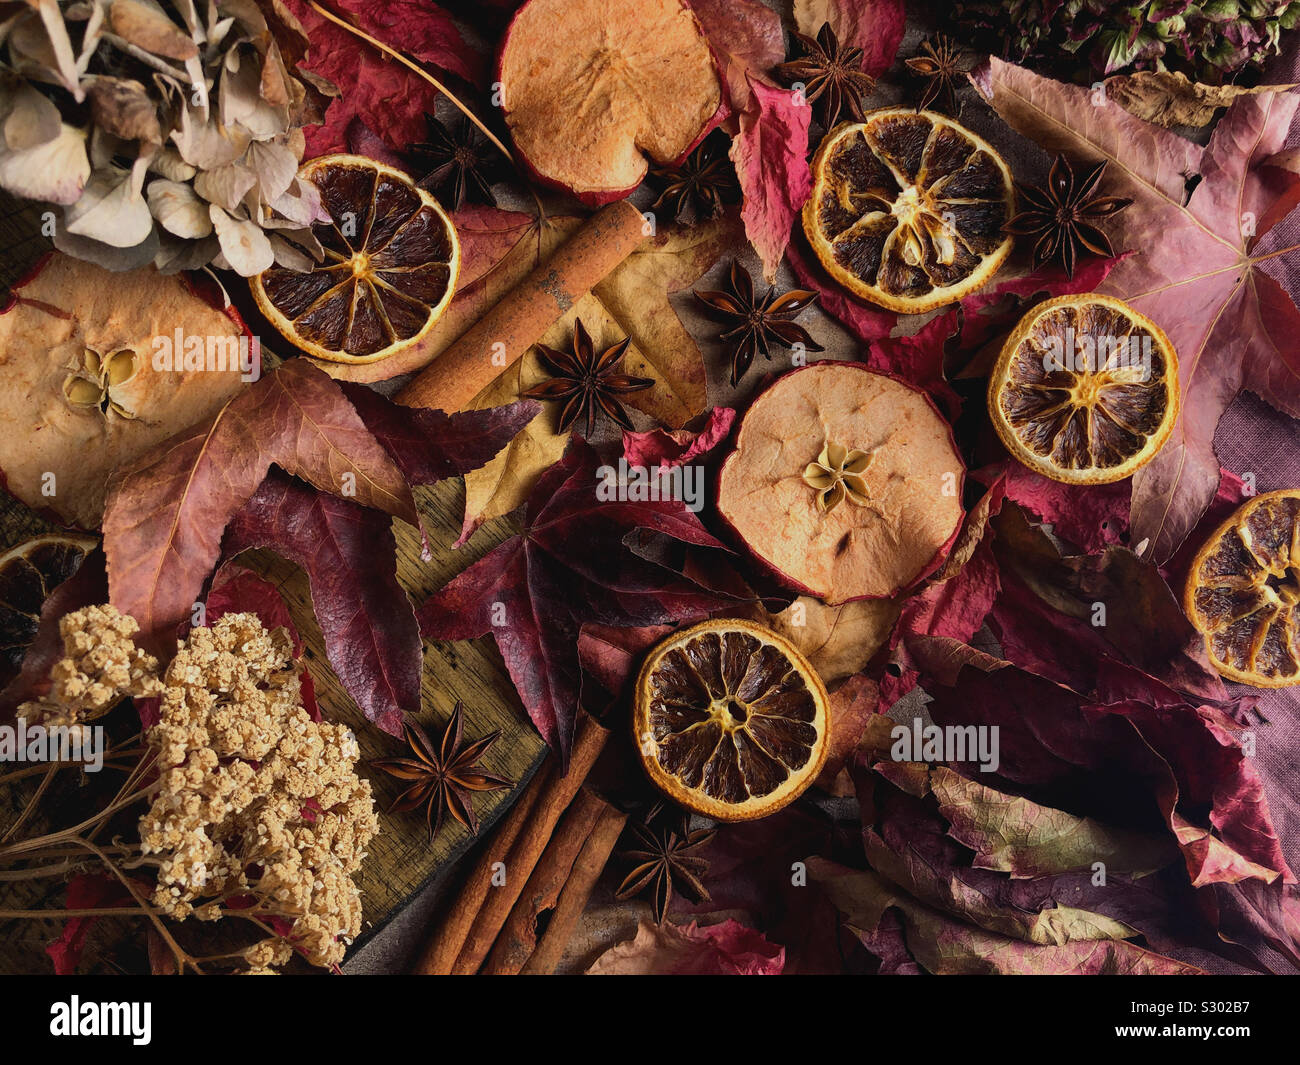 High angle view of various dried fruits and flowers Stock Photo